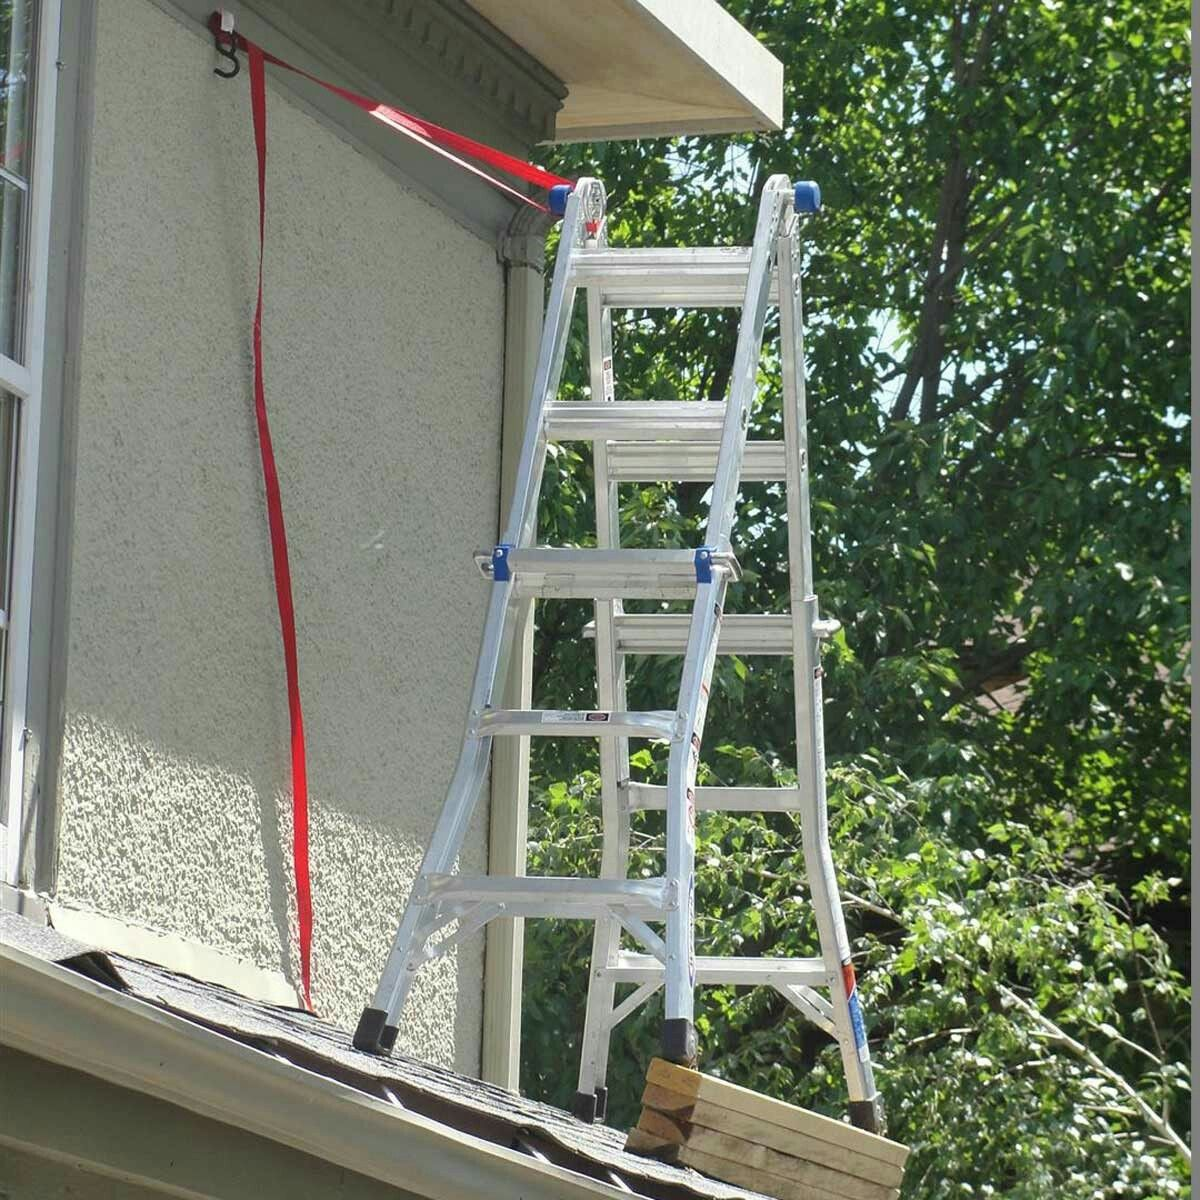 Ladder safety on roof Home inspection, Home inspector